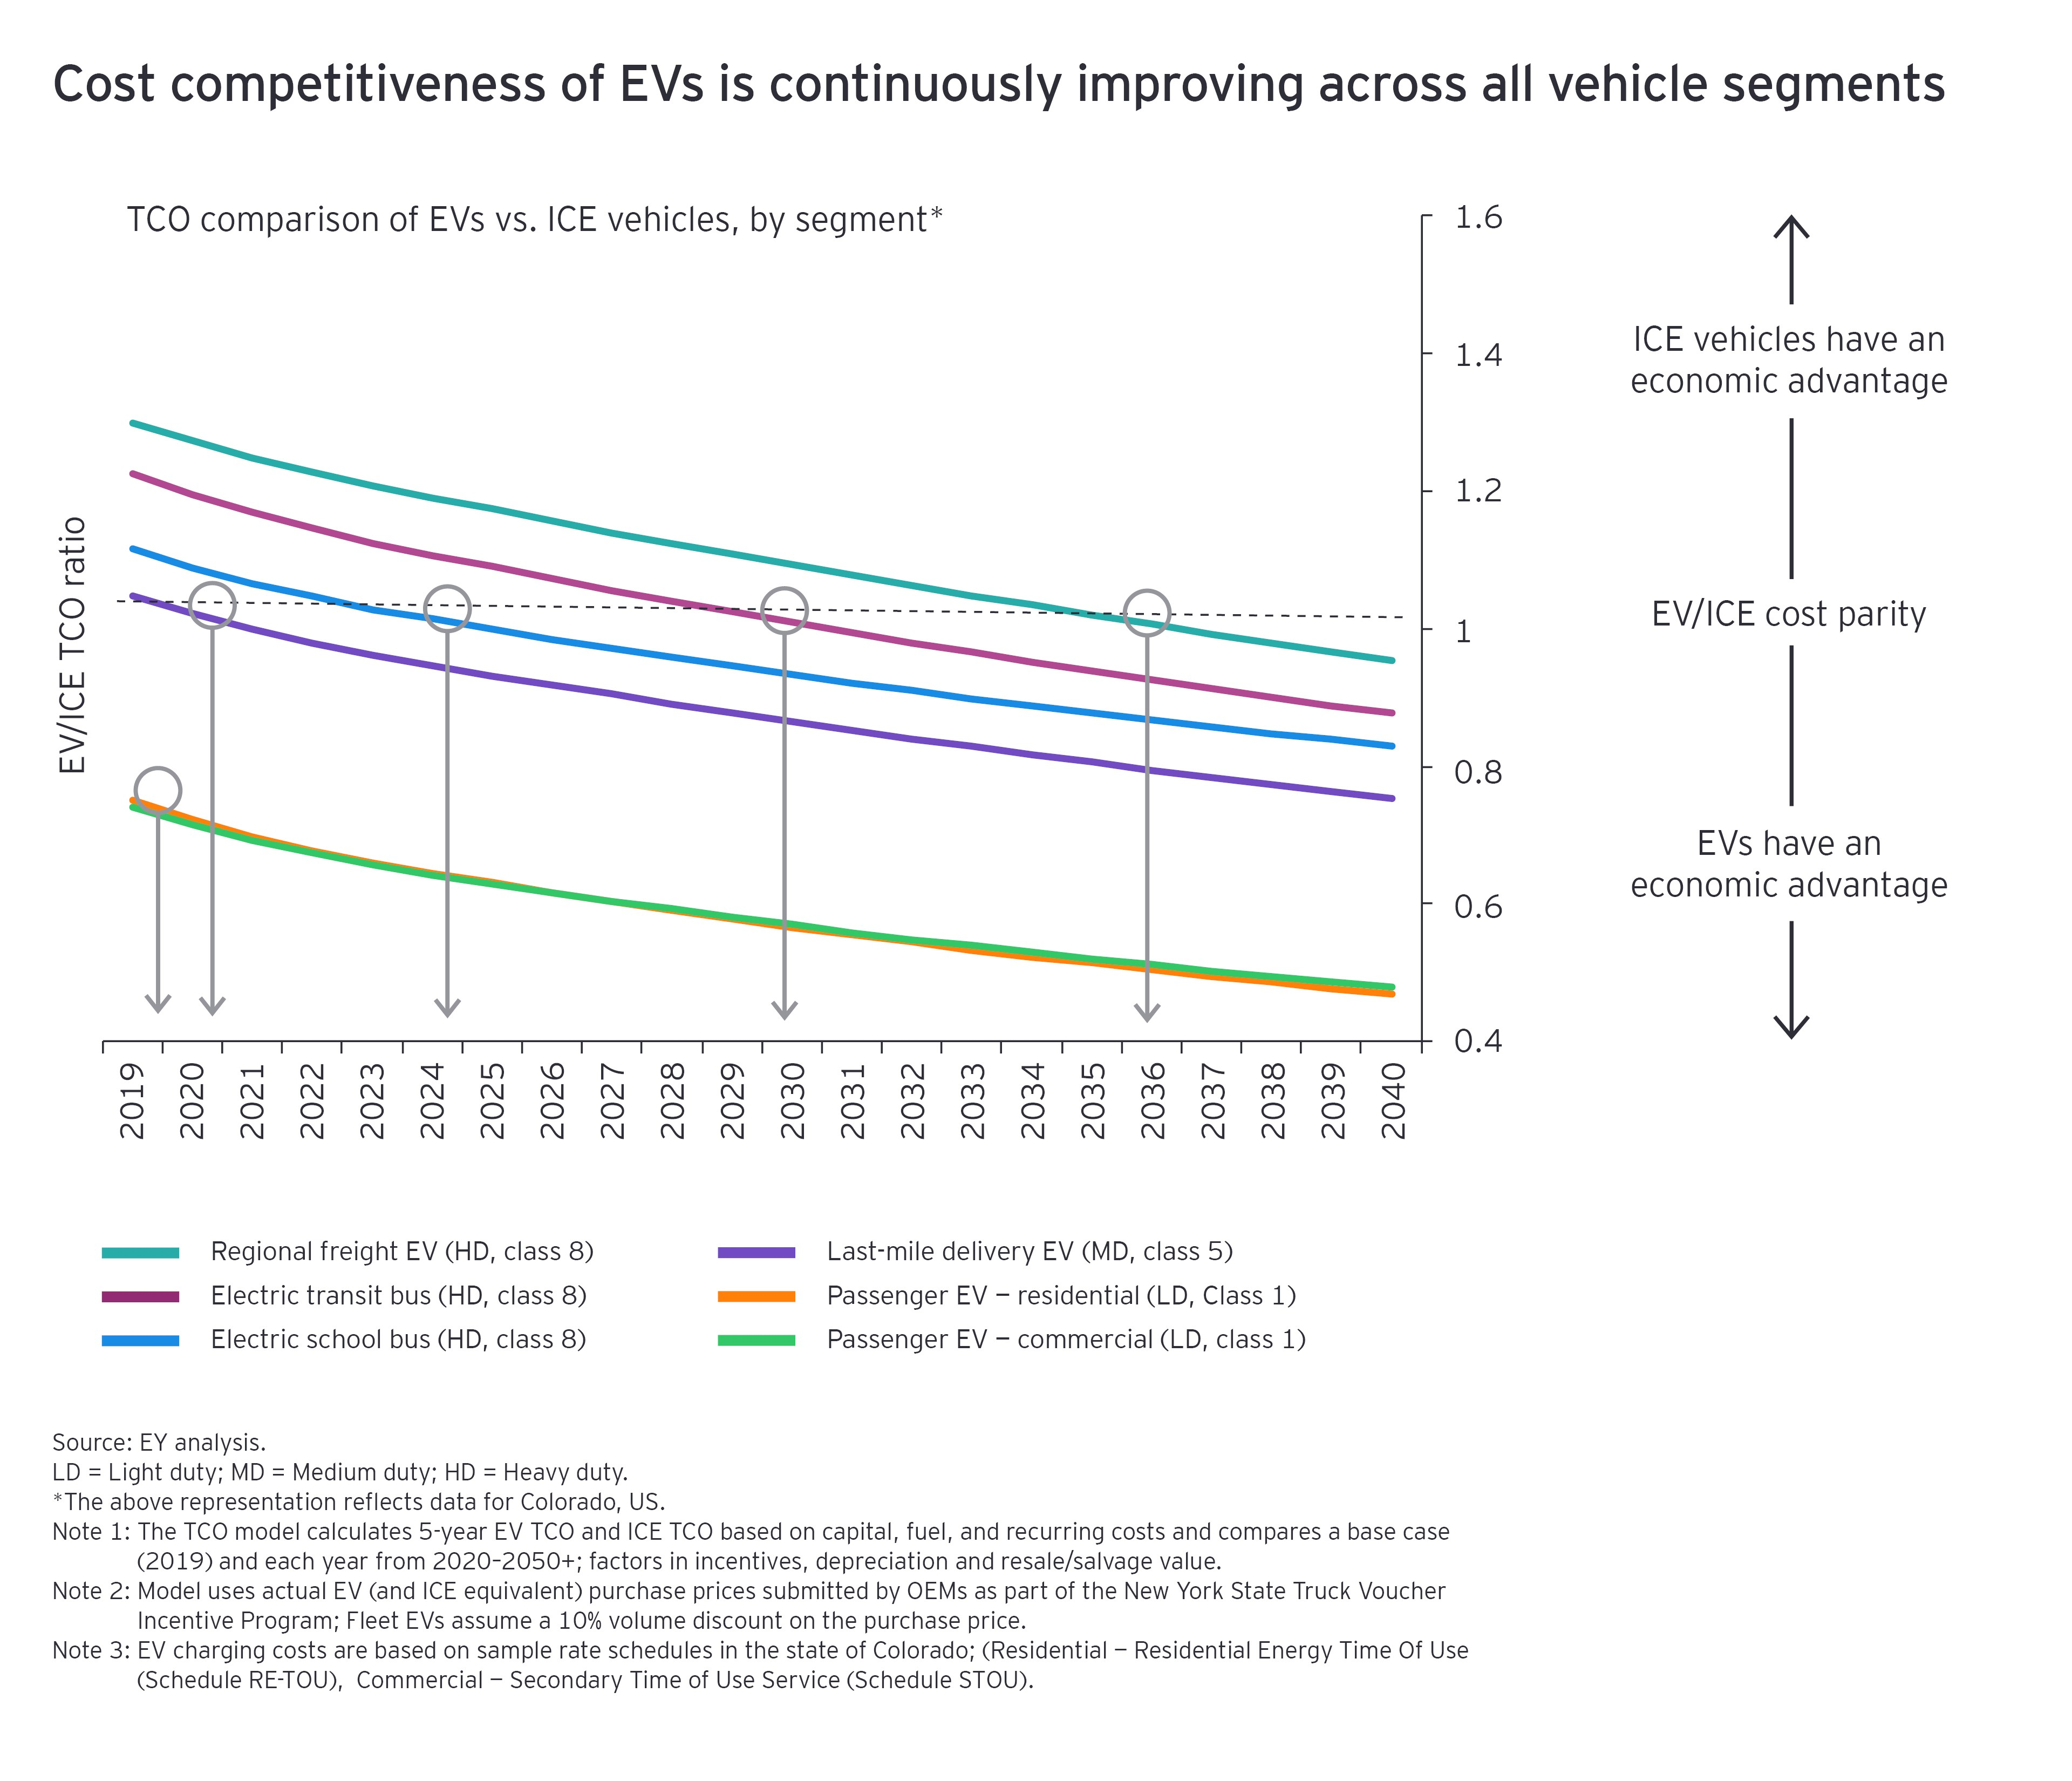 Cost competitiveness of EVs is continuously improving across all vehicle segments